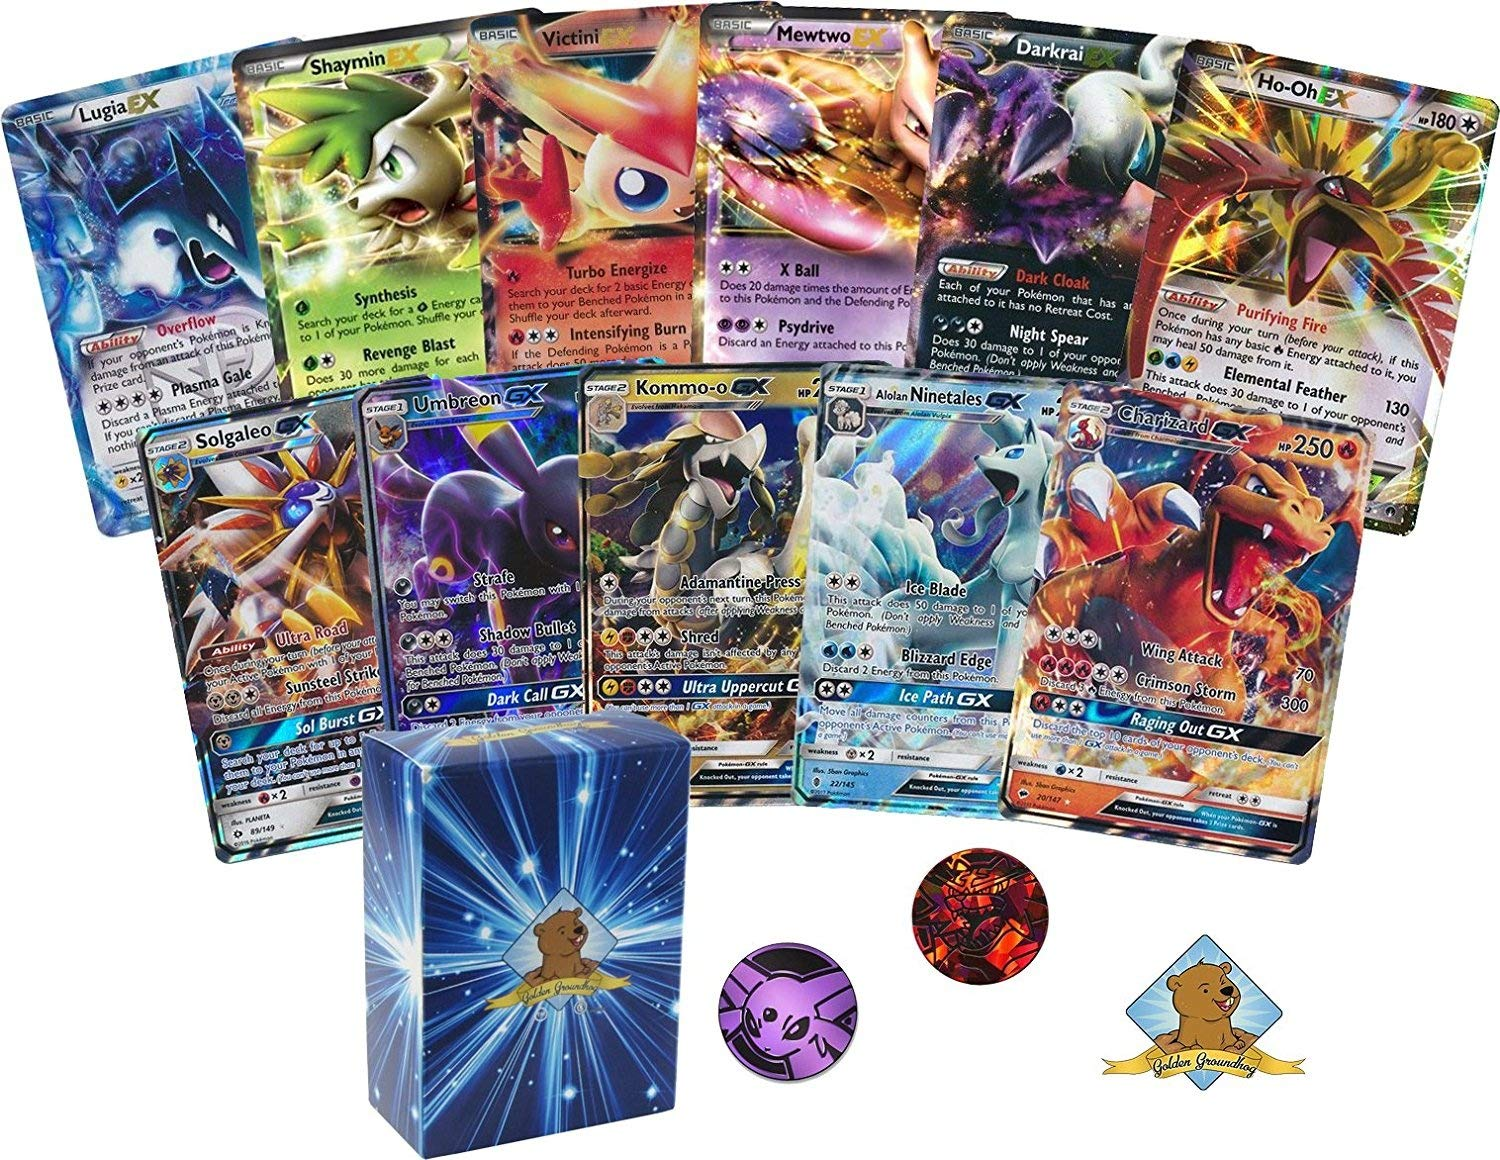 Rares Pokemon 100 Card Lot with Energy Featuring 2 Legendary GX Cards No Duplication By Golden Groundhog